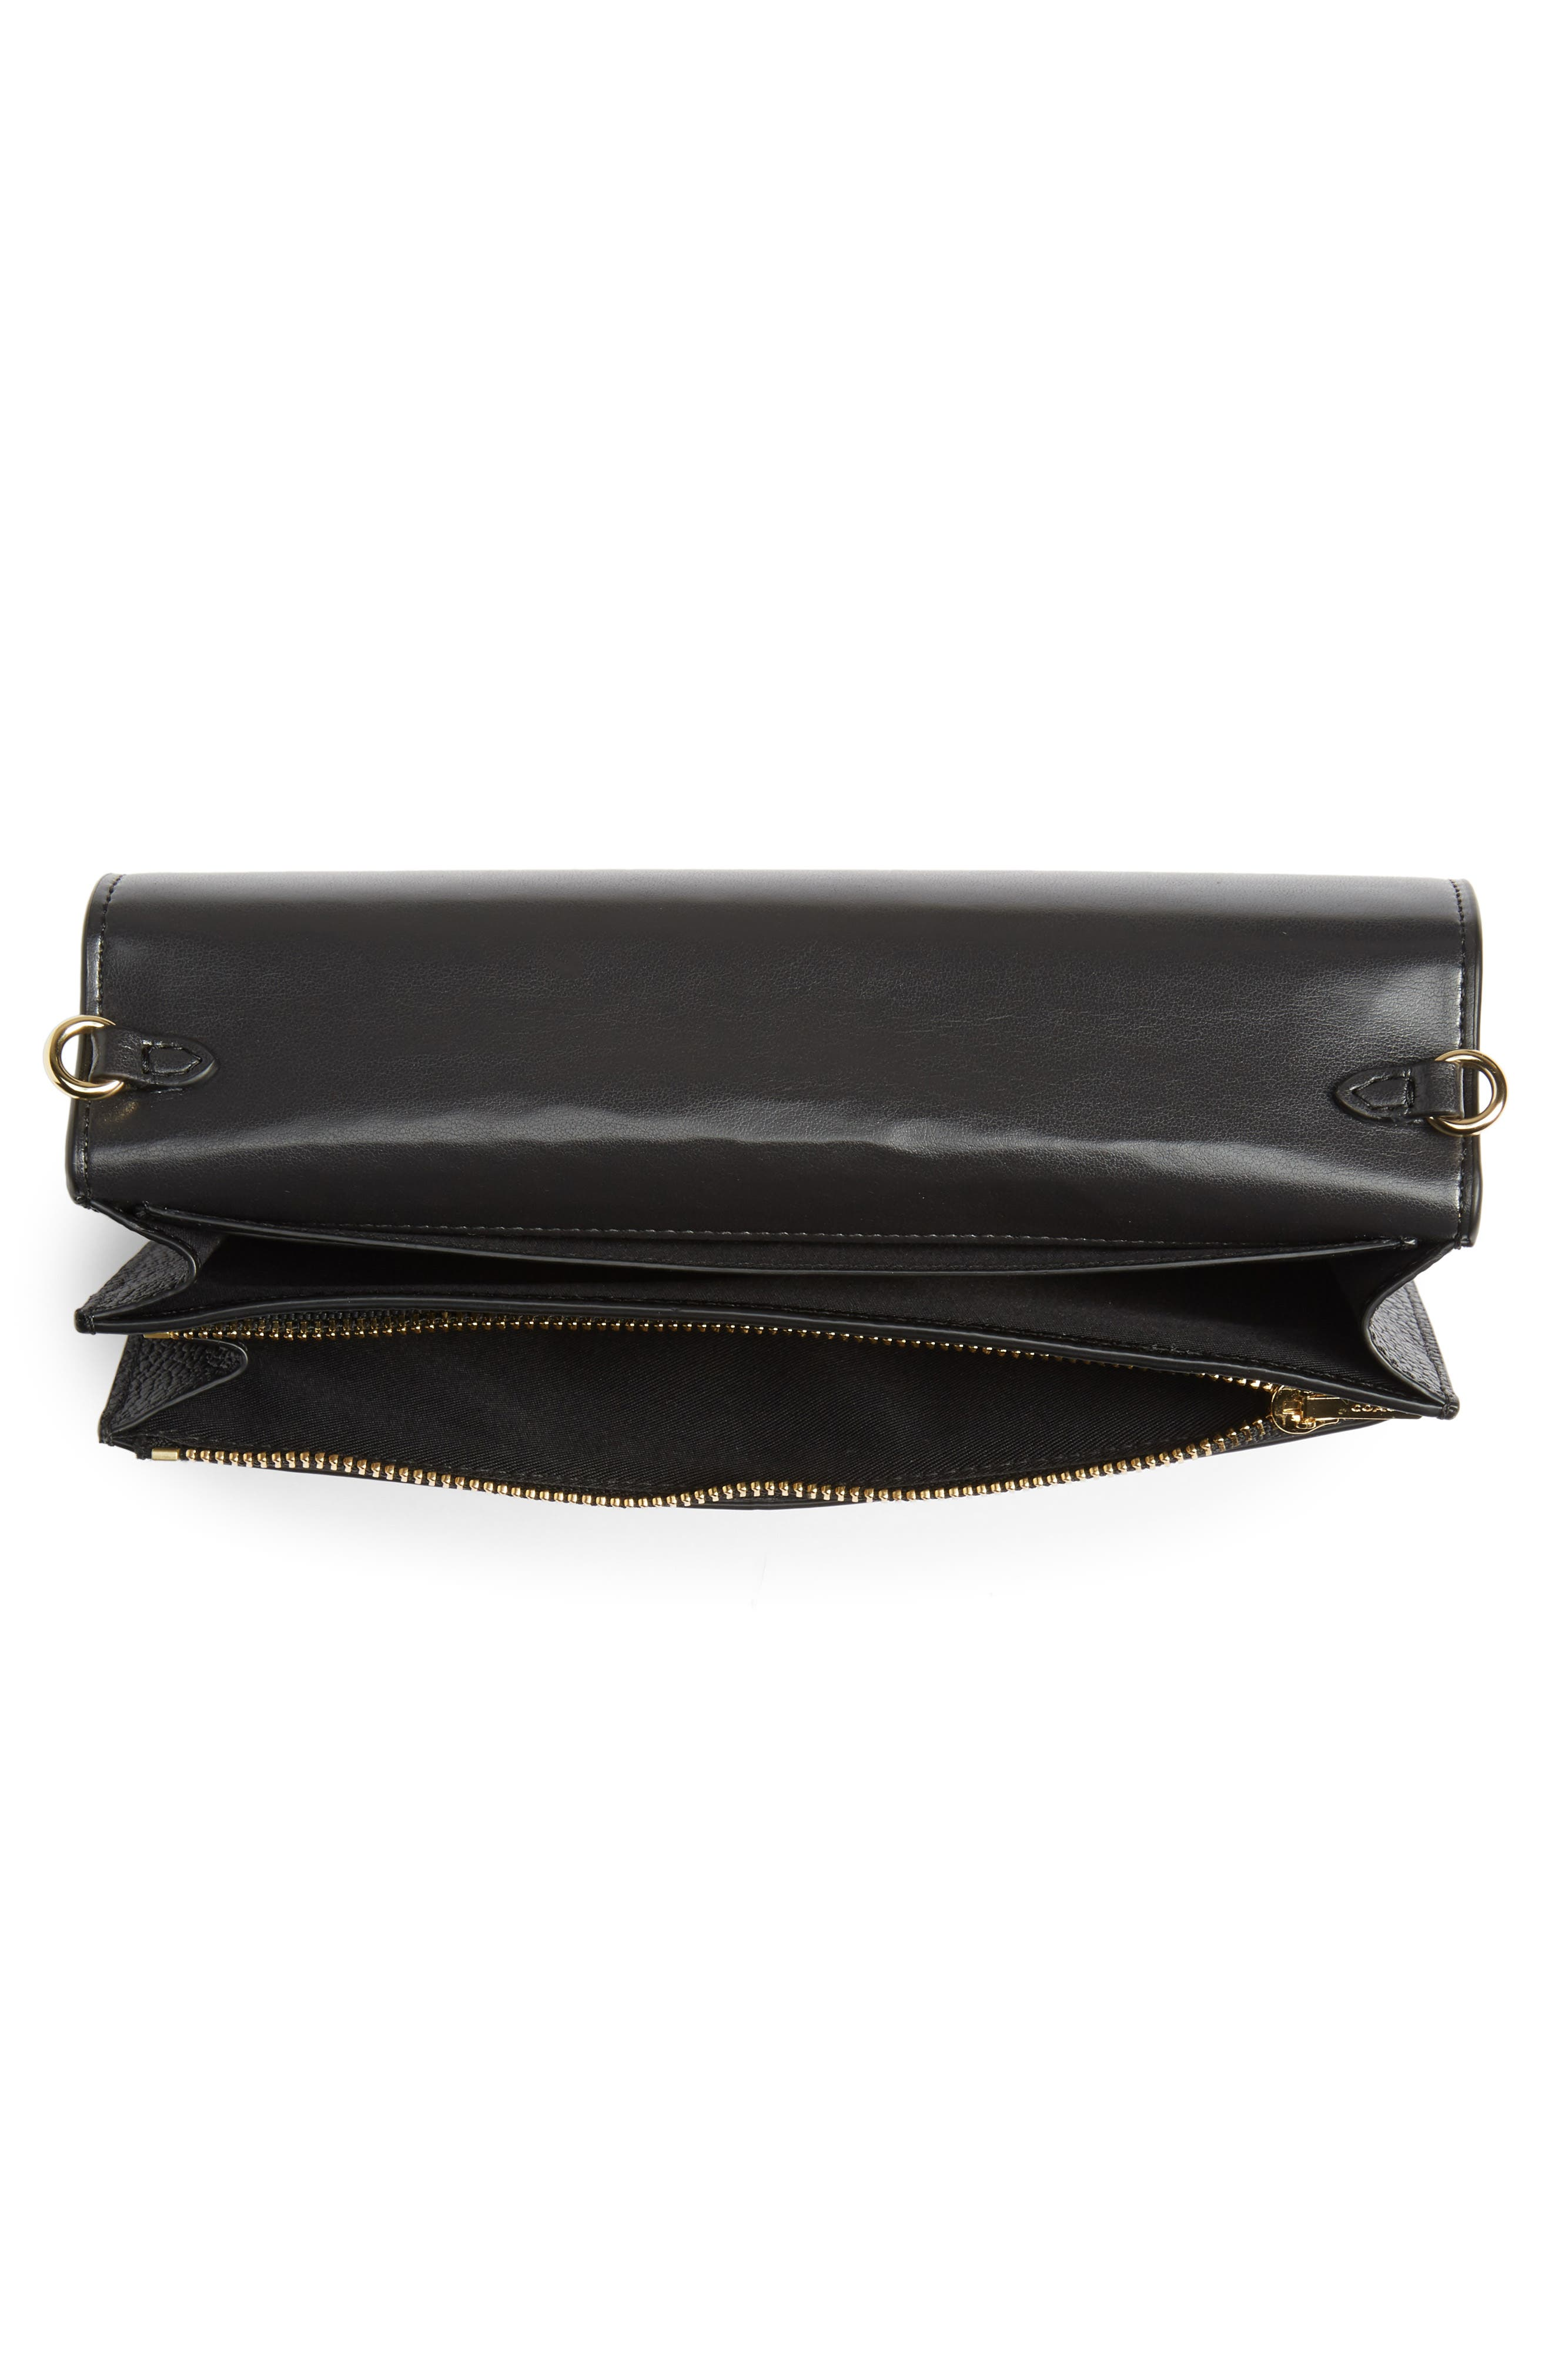 COACH,                             Foldover Calfskin Leather Convertible Clutch,                             Alternate thumbnail 4, color,                             LI/ BLACK